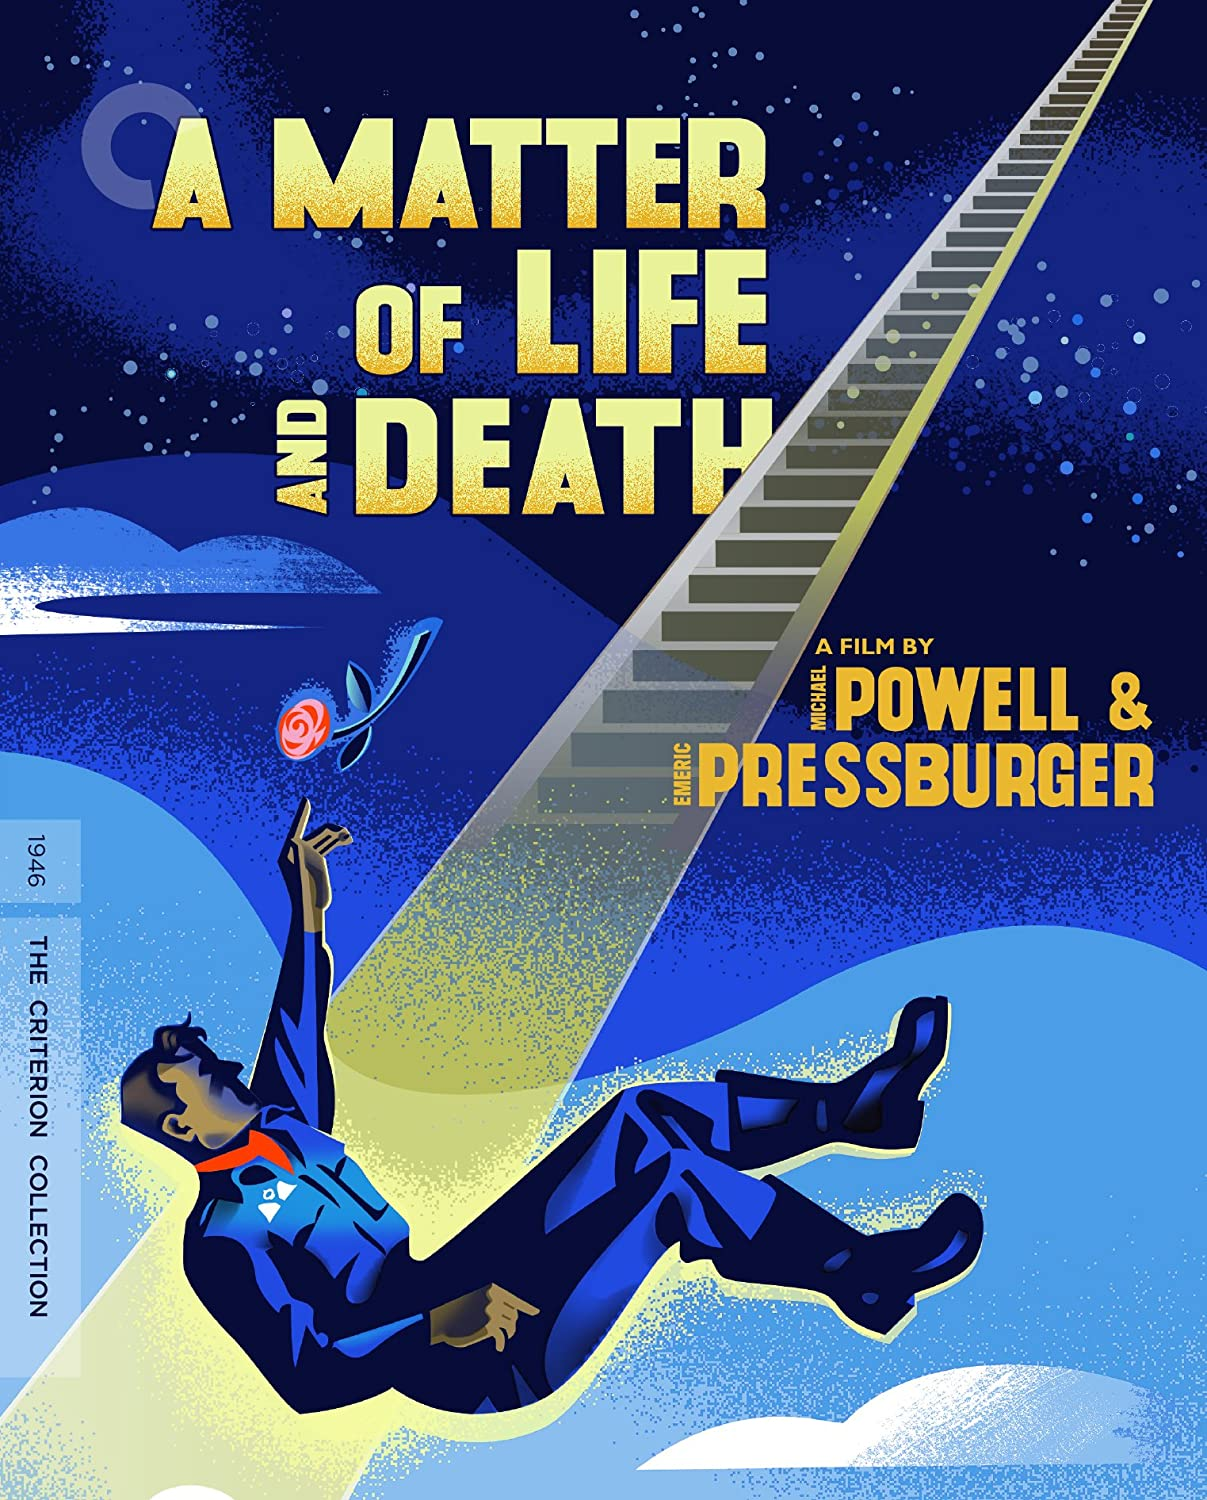 Image result for a matter of life and death criterion poster